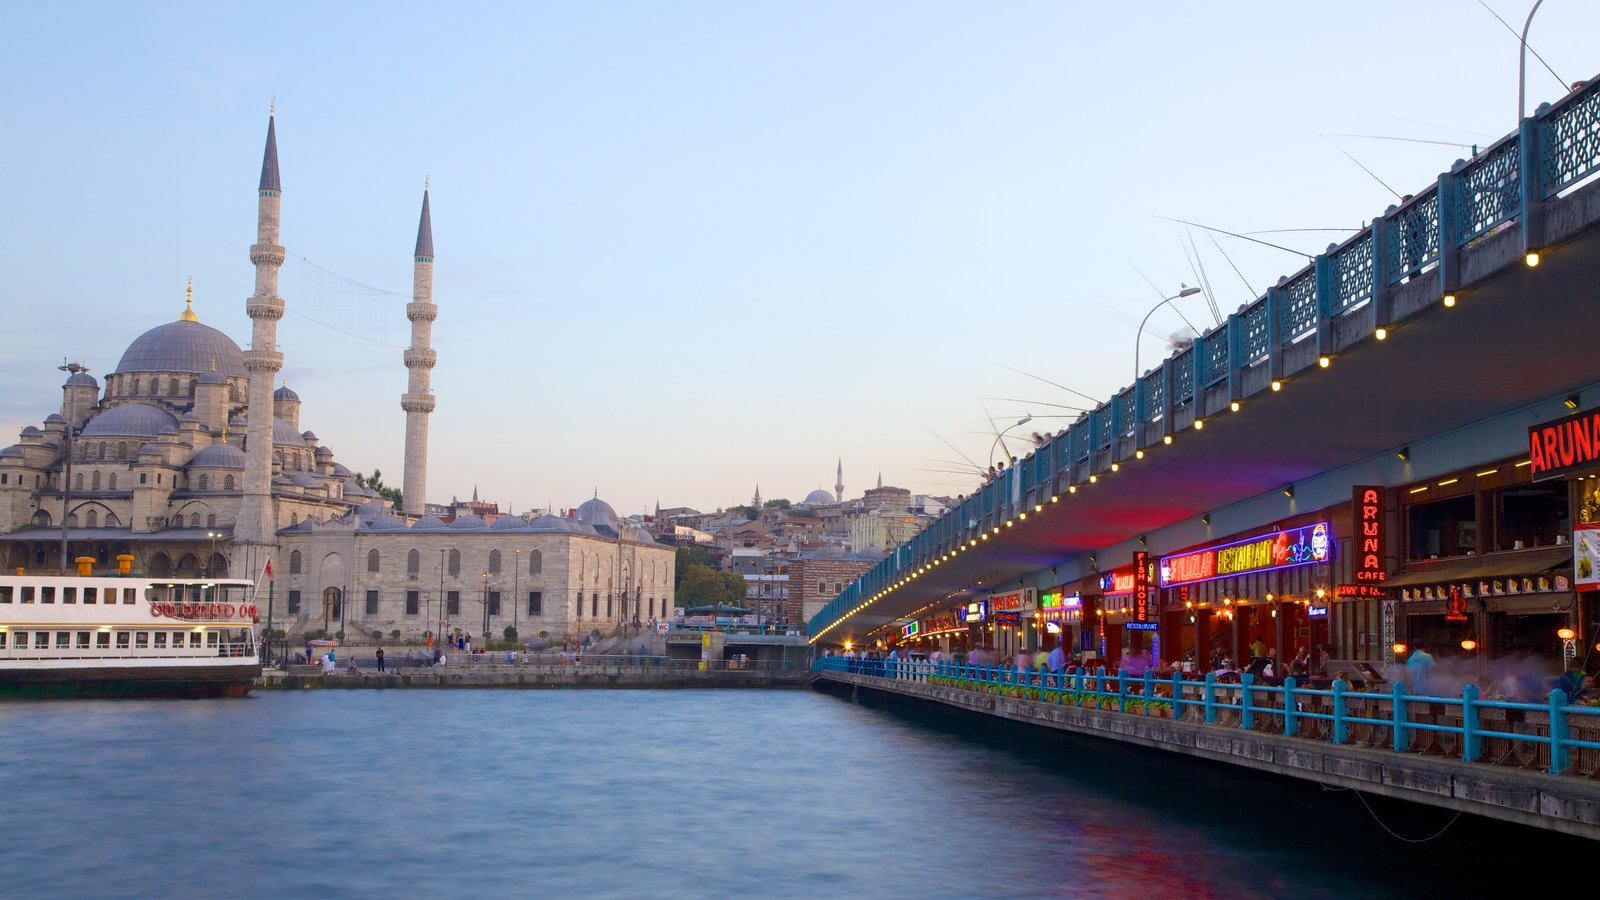 Galata Bridge featuring a church or cathedral, cafe lifestyle and heritage architecture